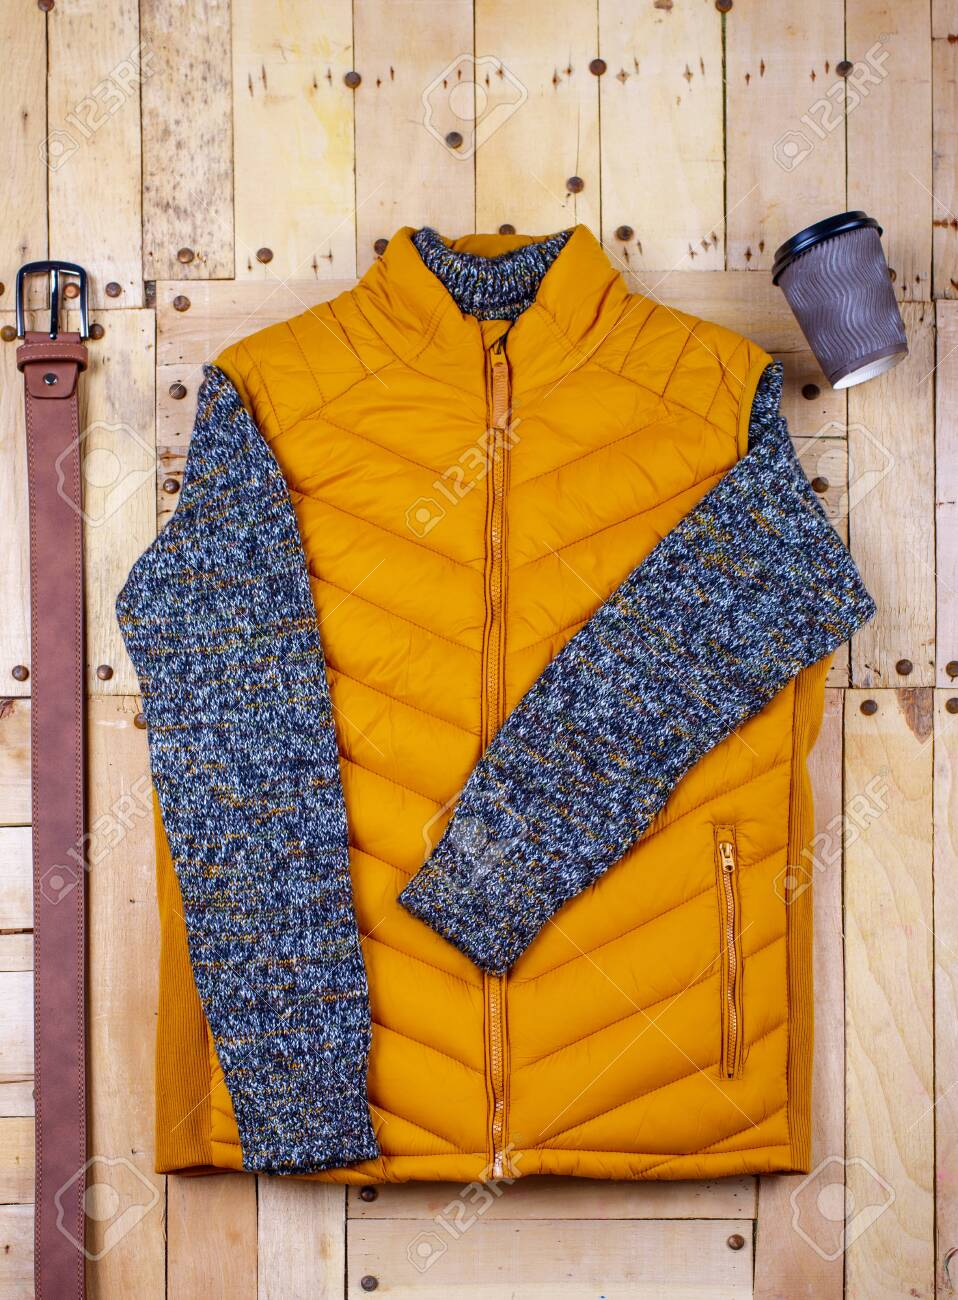 Winter men's clothes and accessories on a wooden background. - 136325110